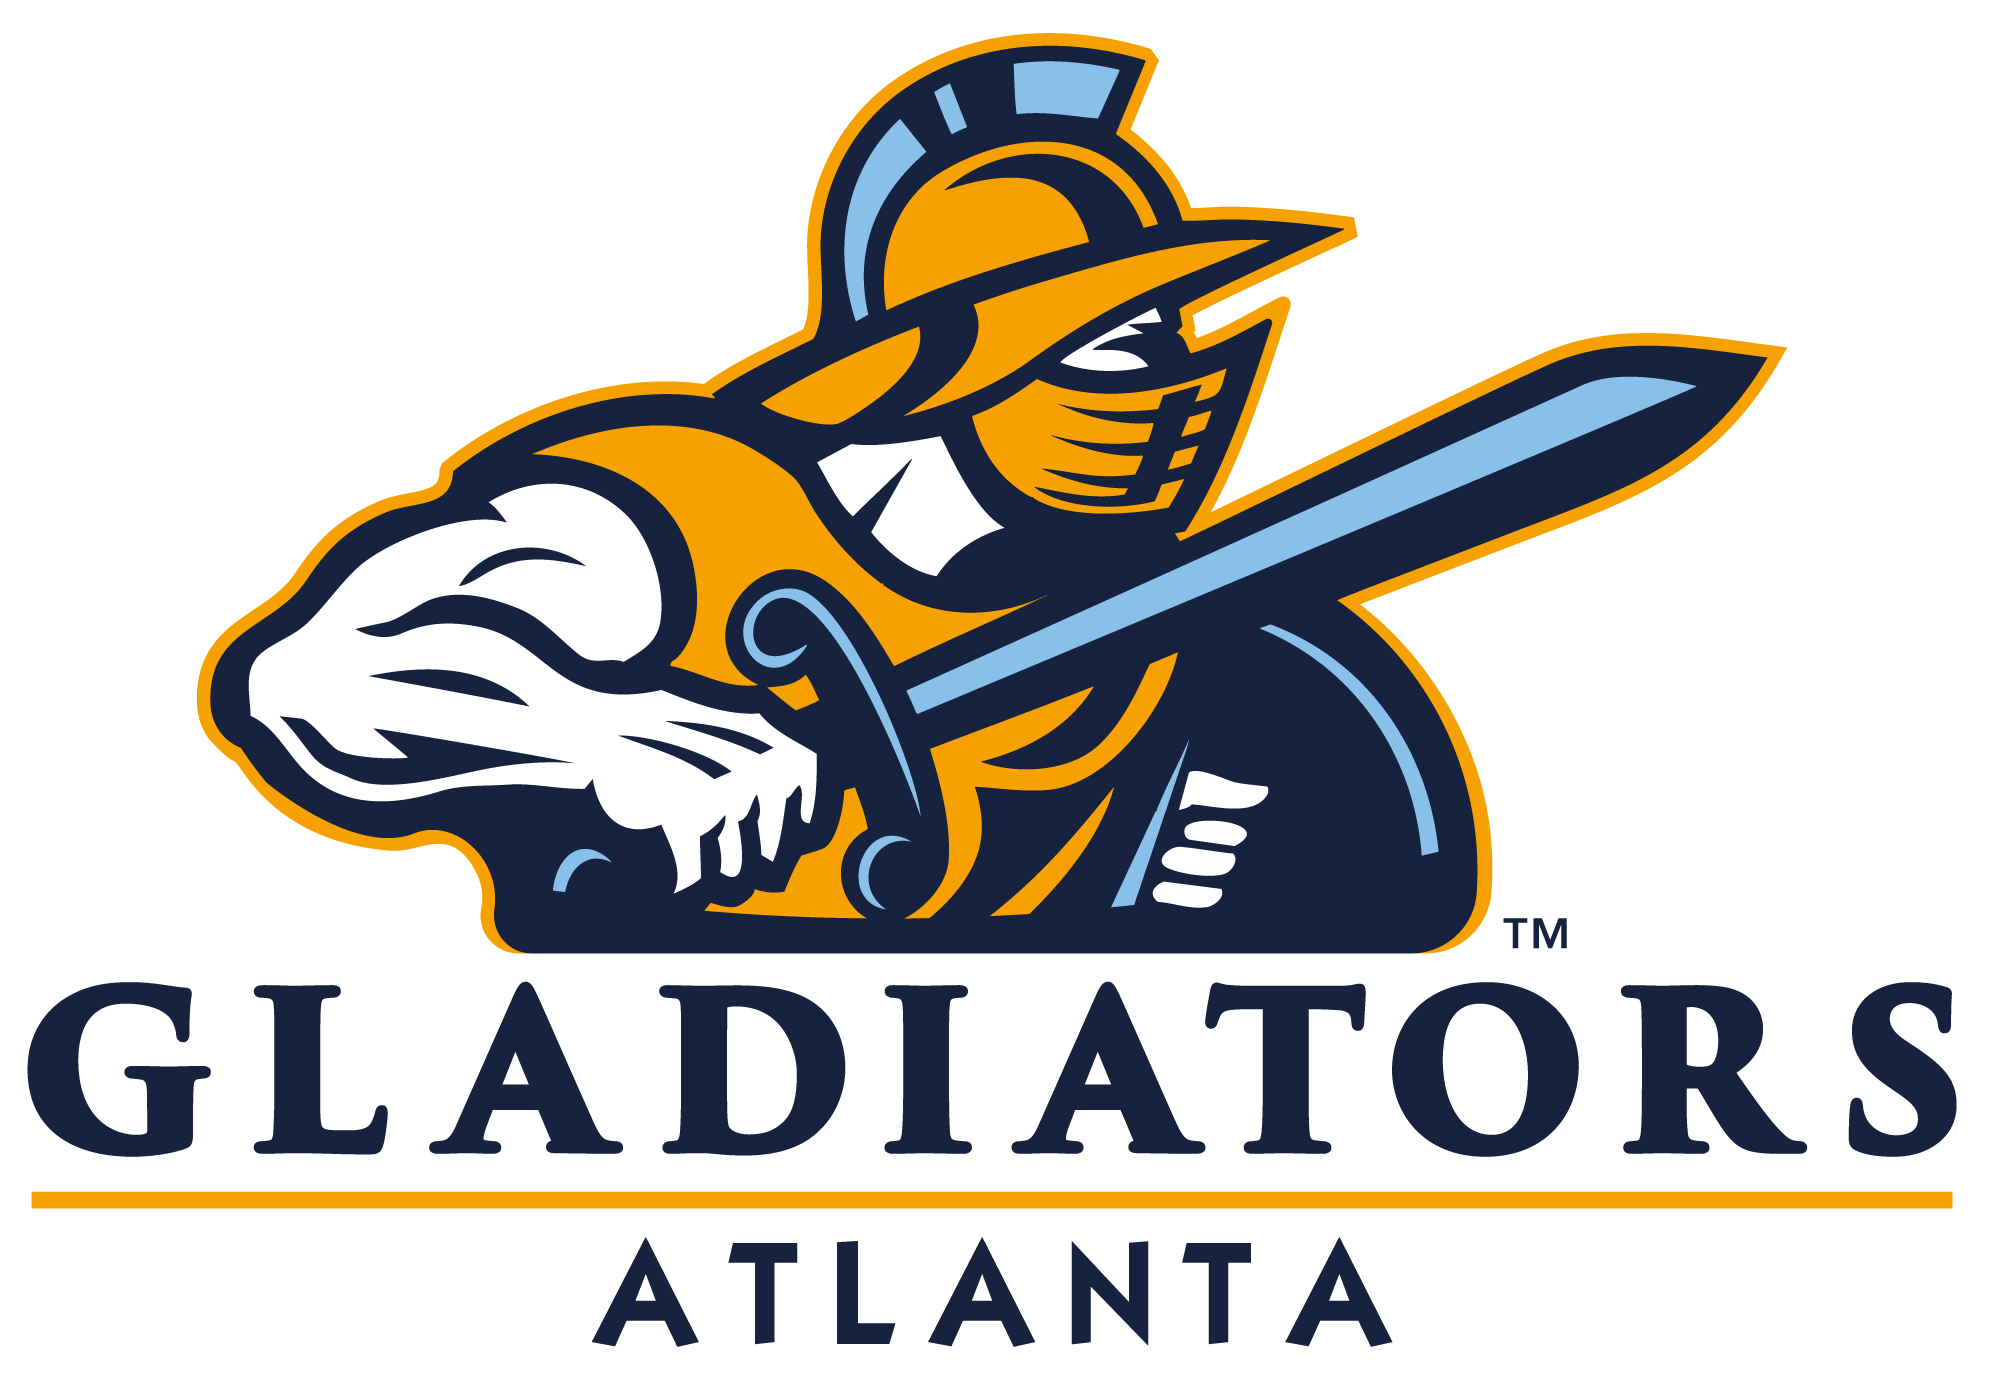 Atlanta Gladiators